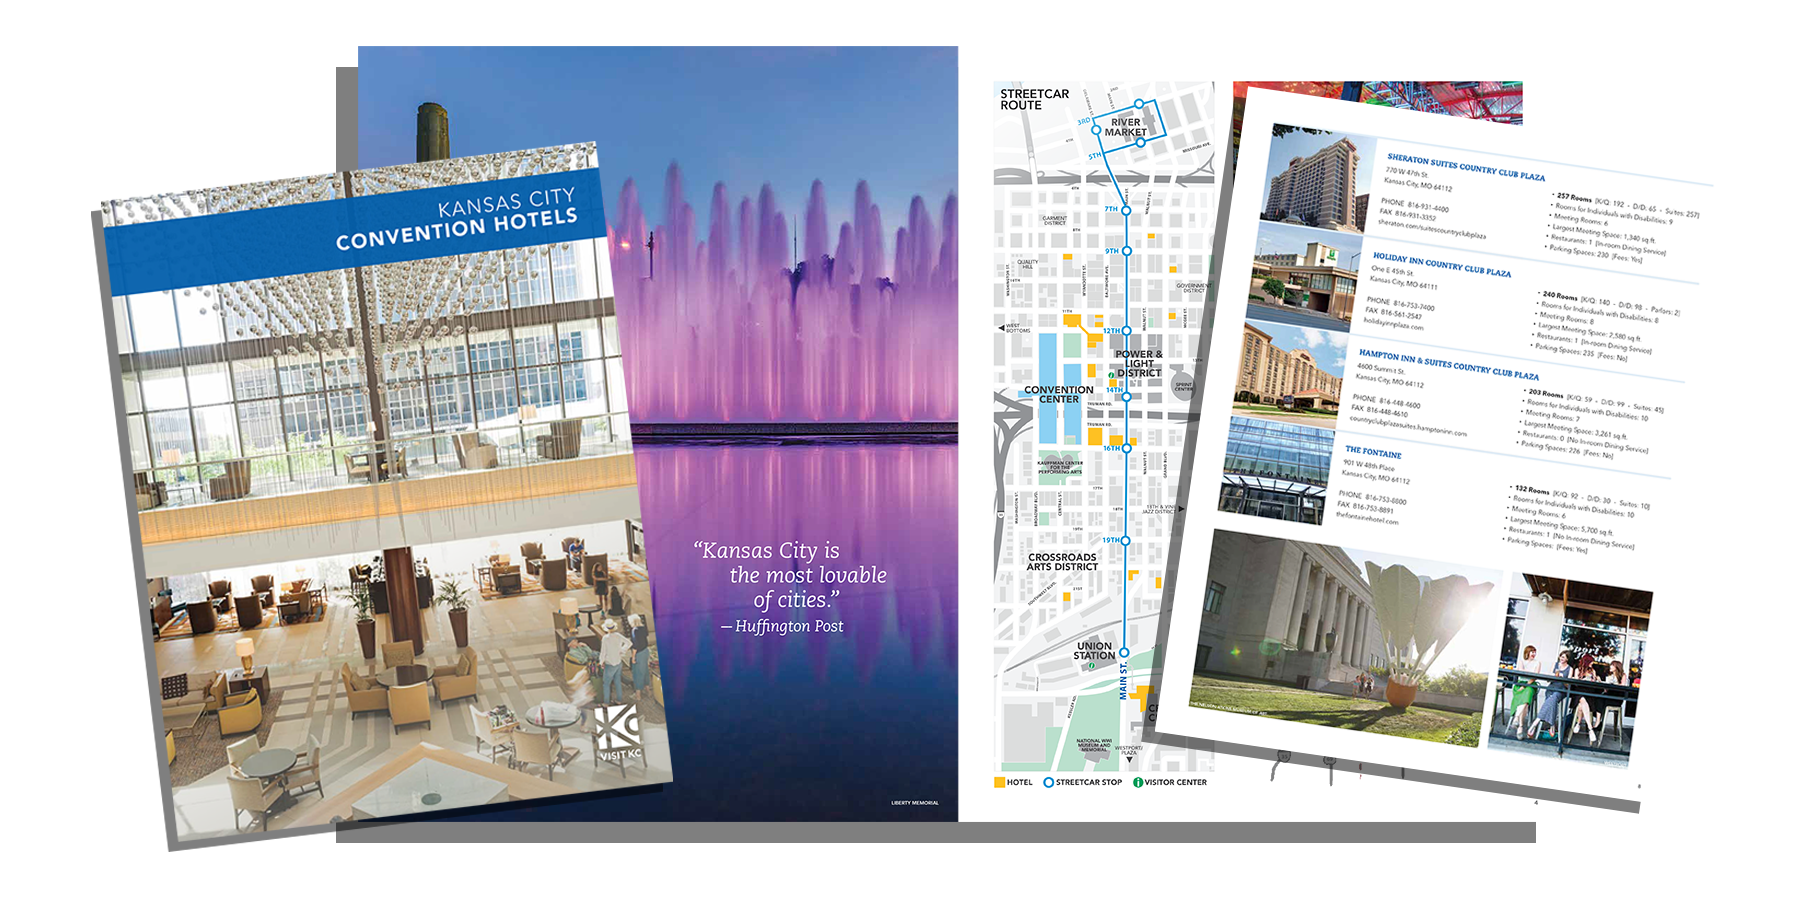 2018 Visit KC Convention Hotel Guide for Meeting Planners image collage